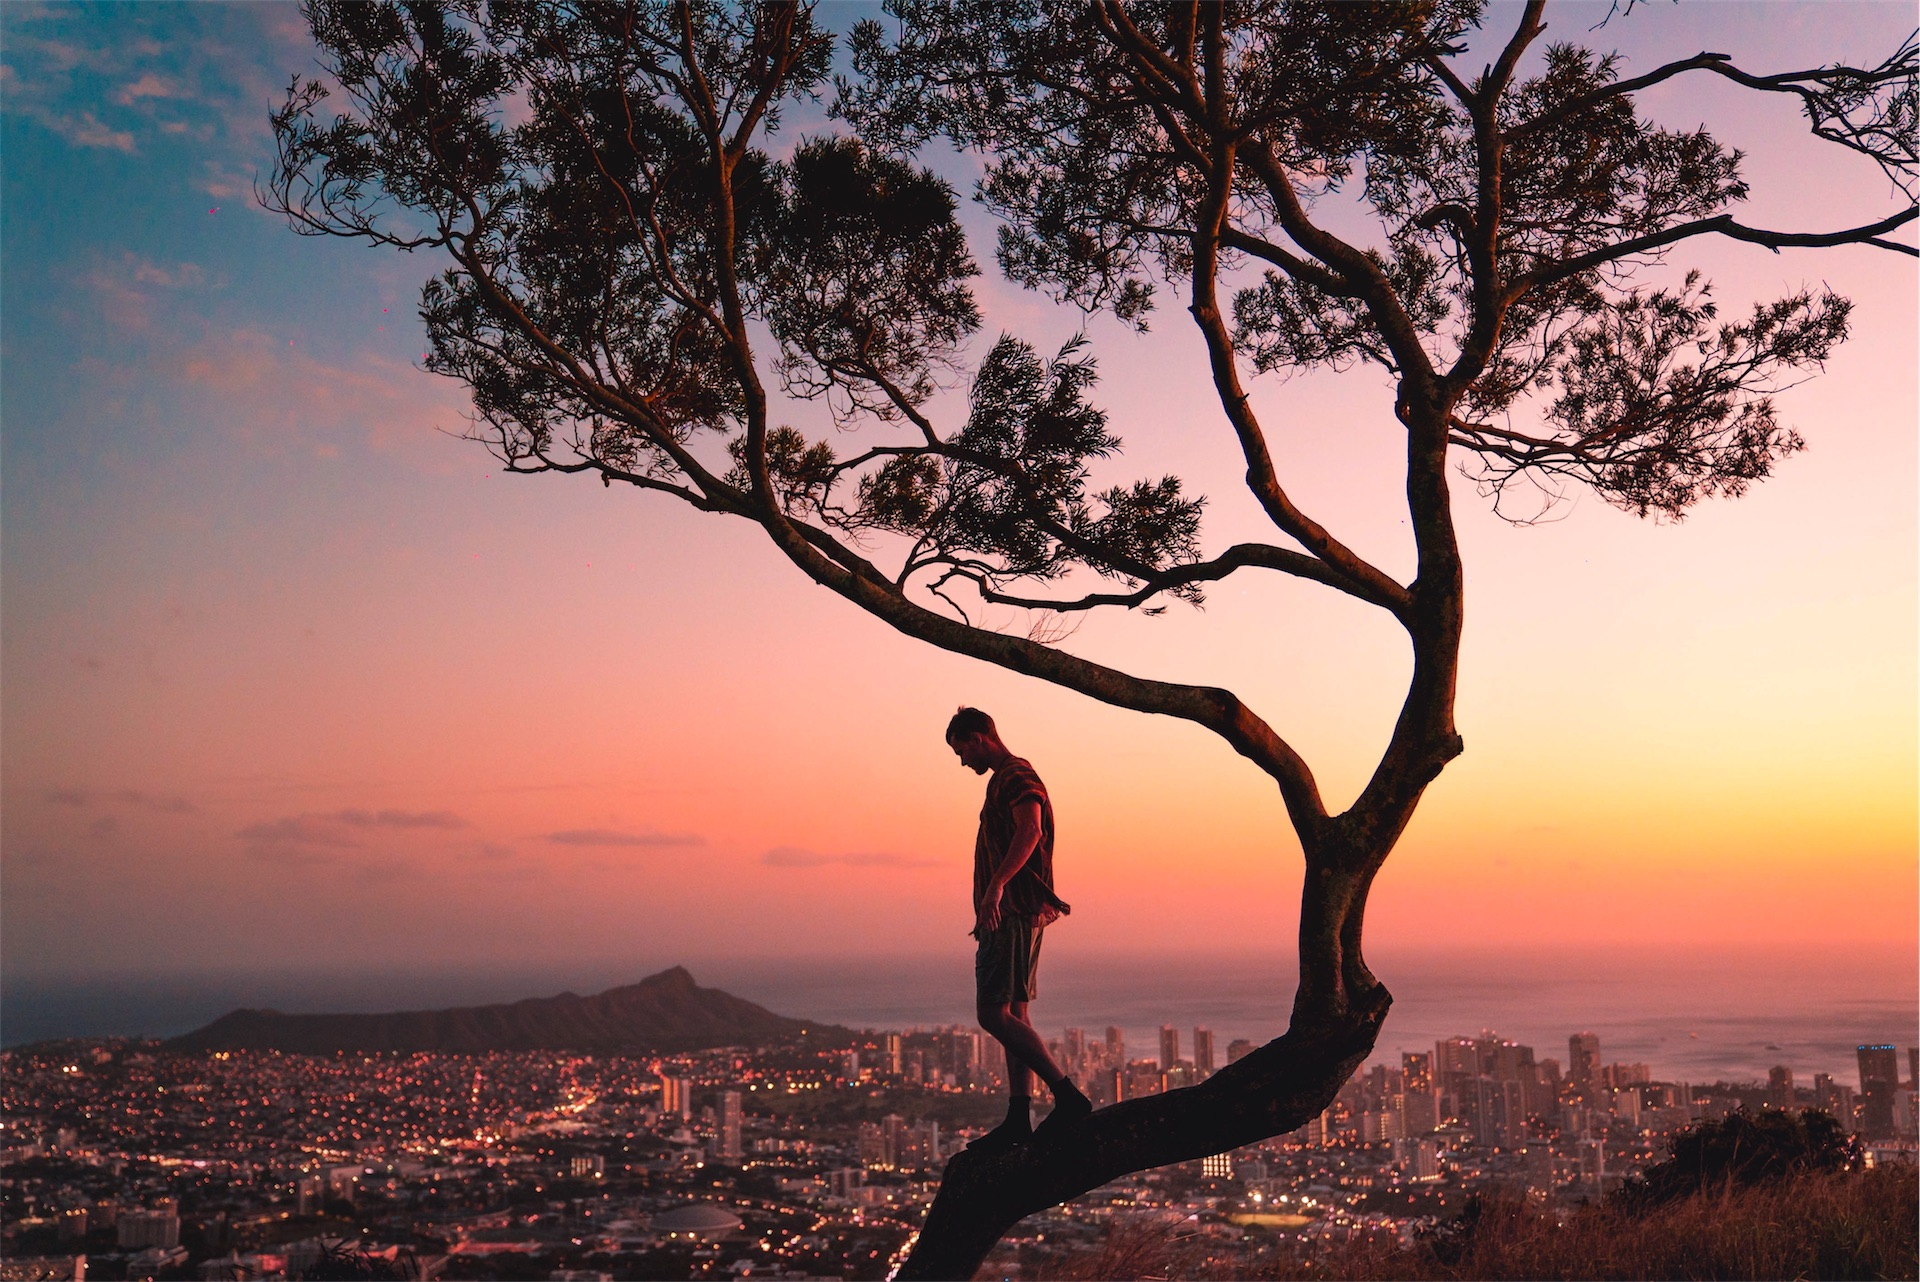 1920man-standing-on-tree-branch-during-sunset-3618162